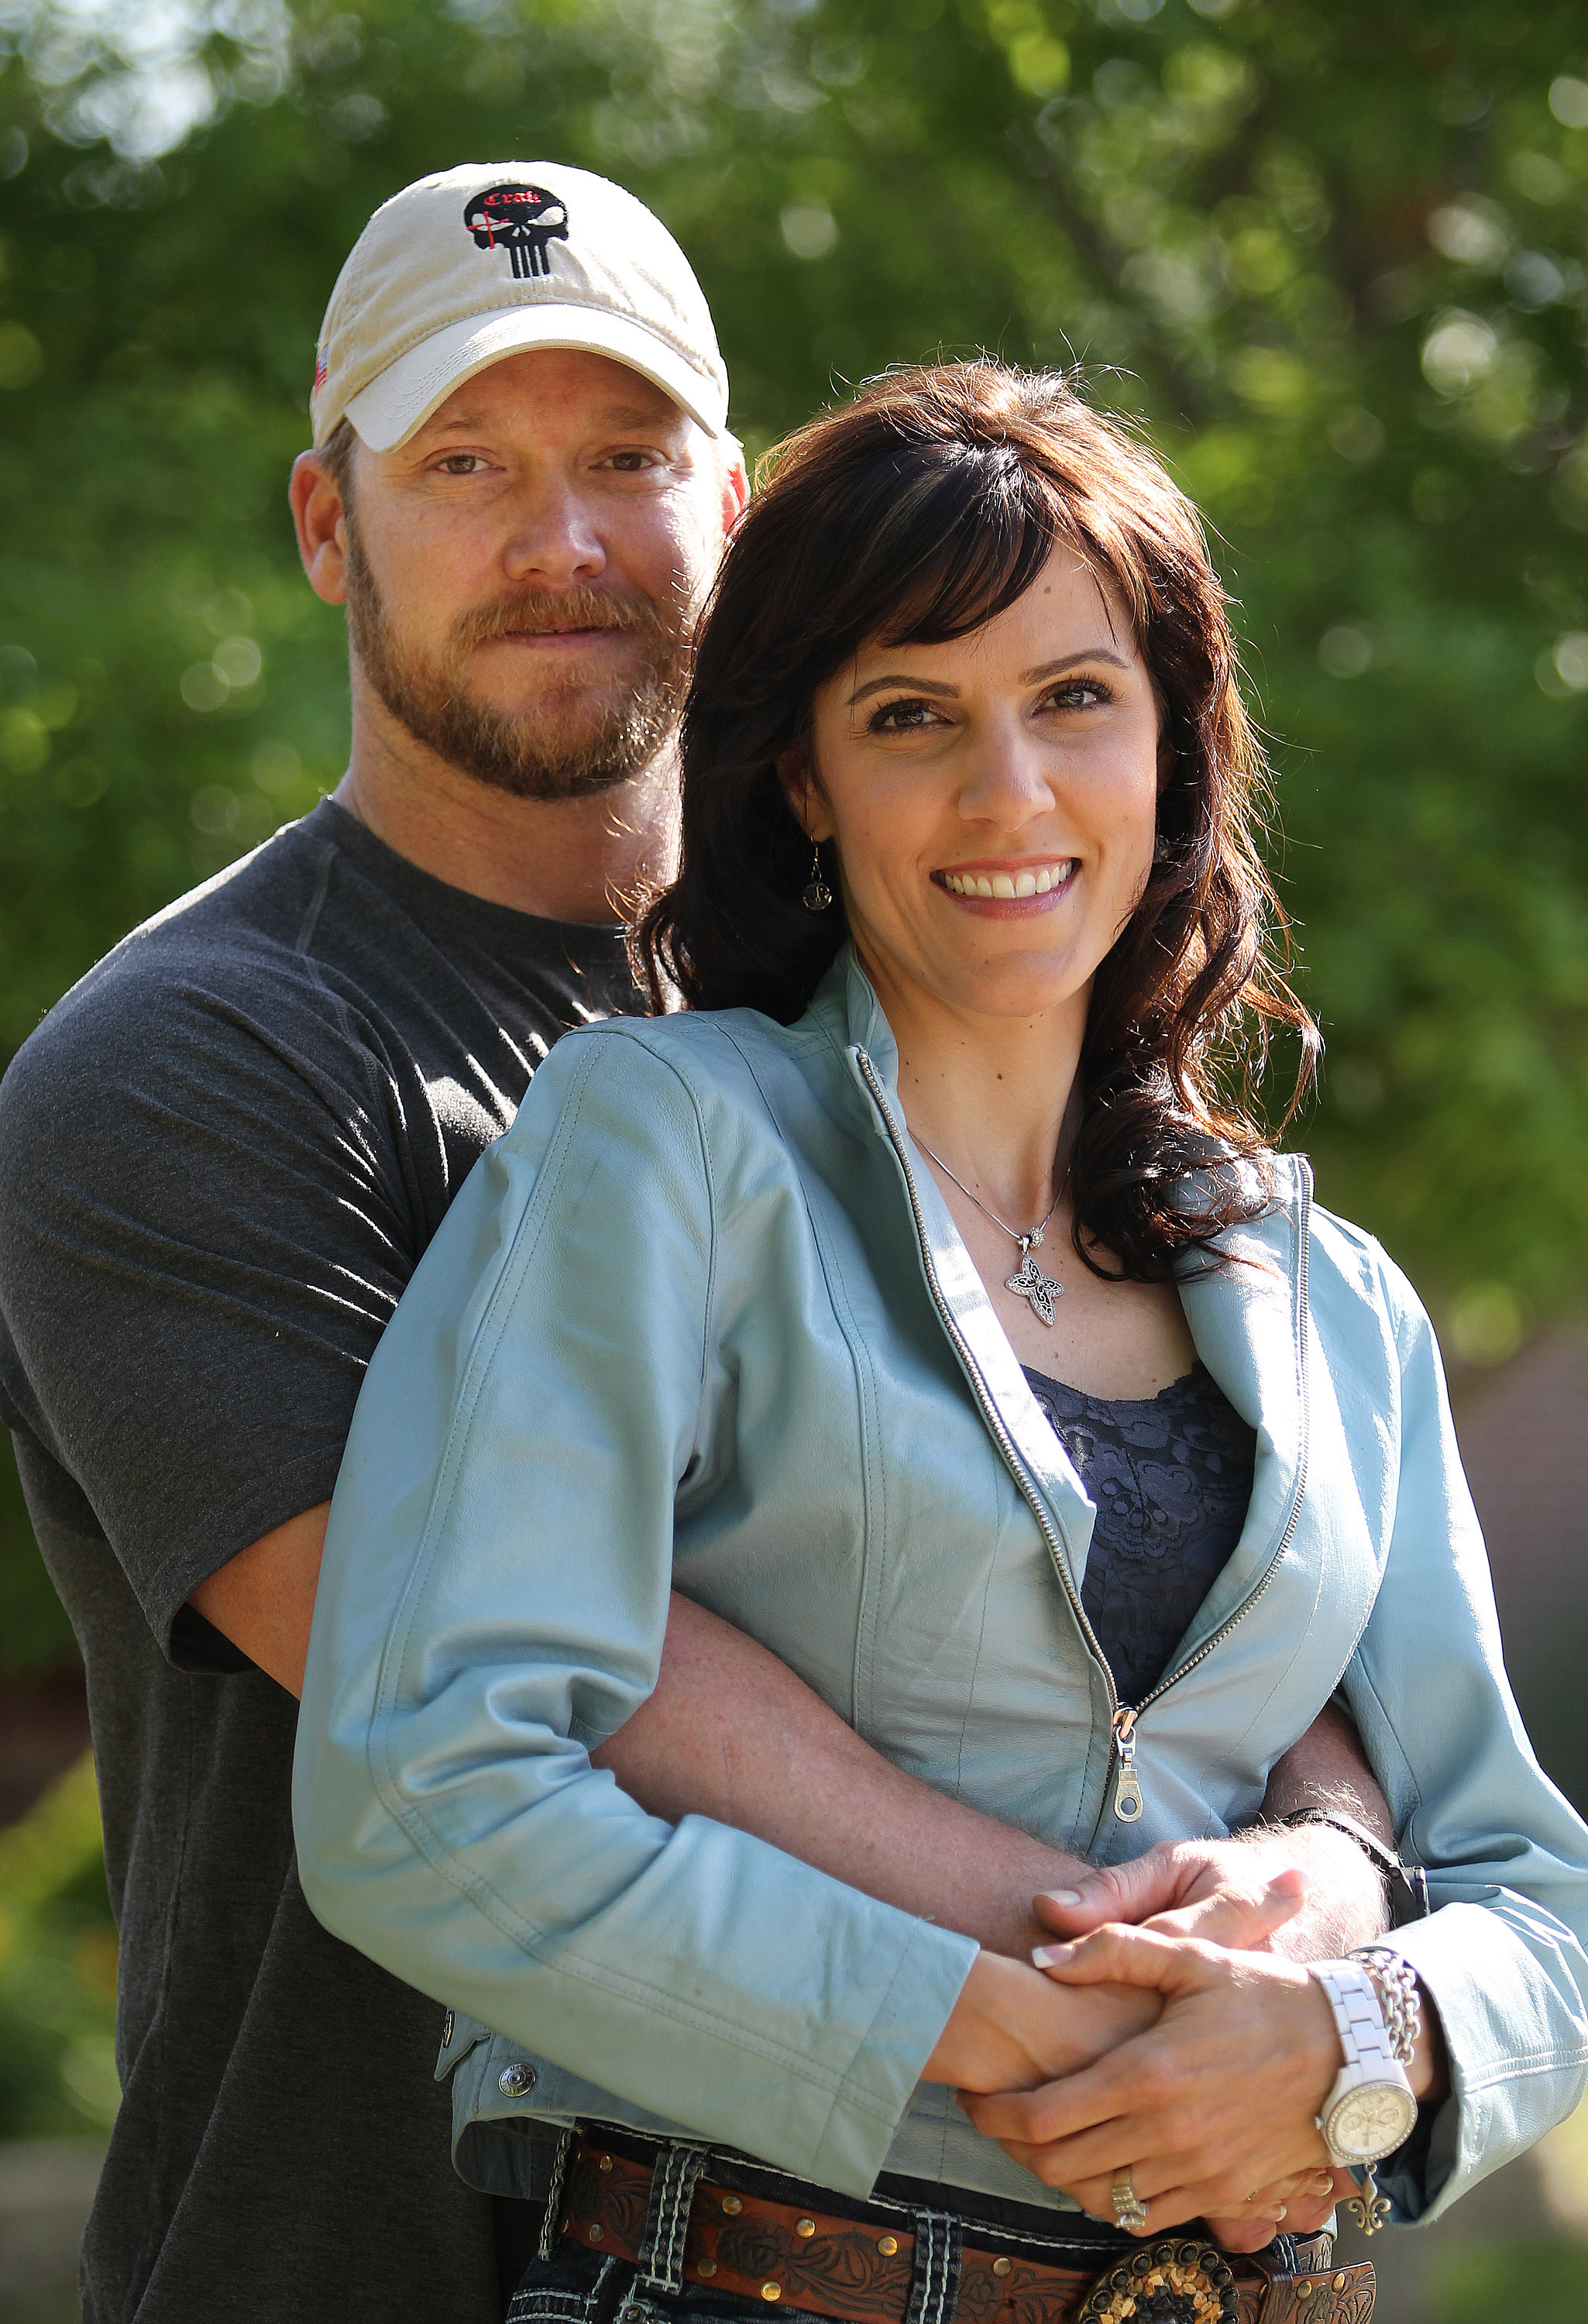 Chris Kyle, a retired Navy SEAL and bestselling author of the book  American Sniper: The Autobiography of the Most Lethal Sniper in U.S. Military History,  is seen with his wife, Taya, April 6, 2012.